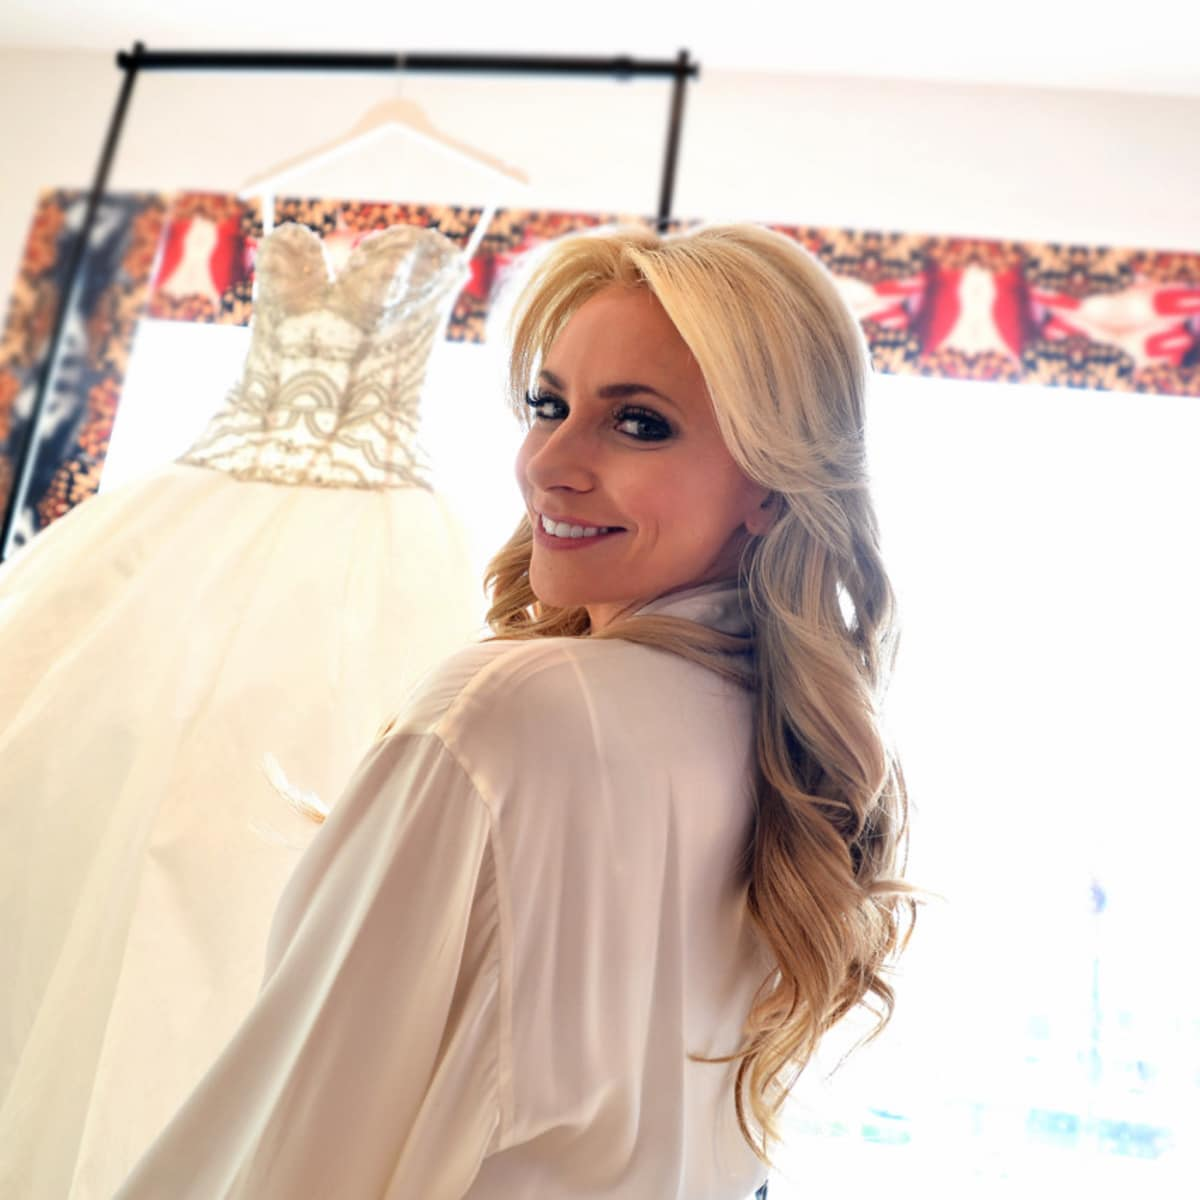 Houston, Chita Johnson wedding, June 2016, Chita with her dress getting ready